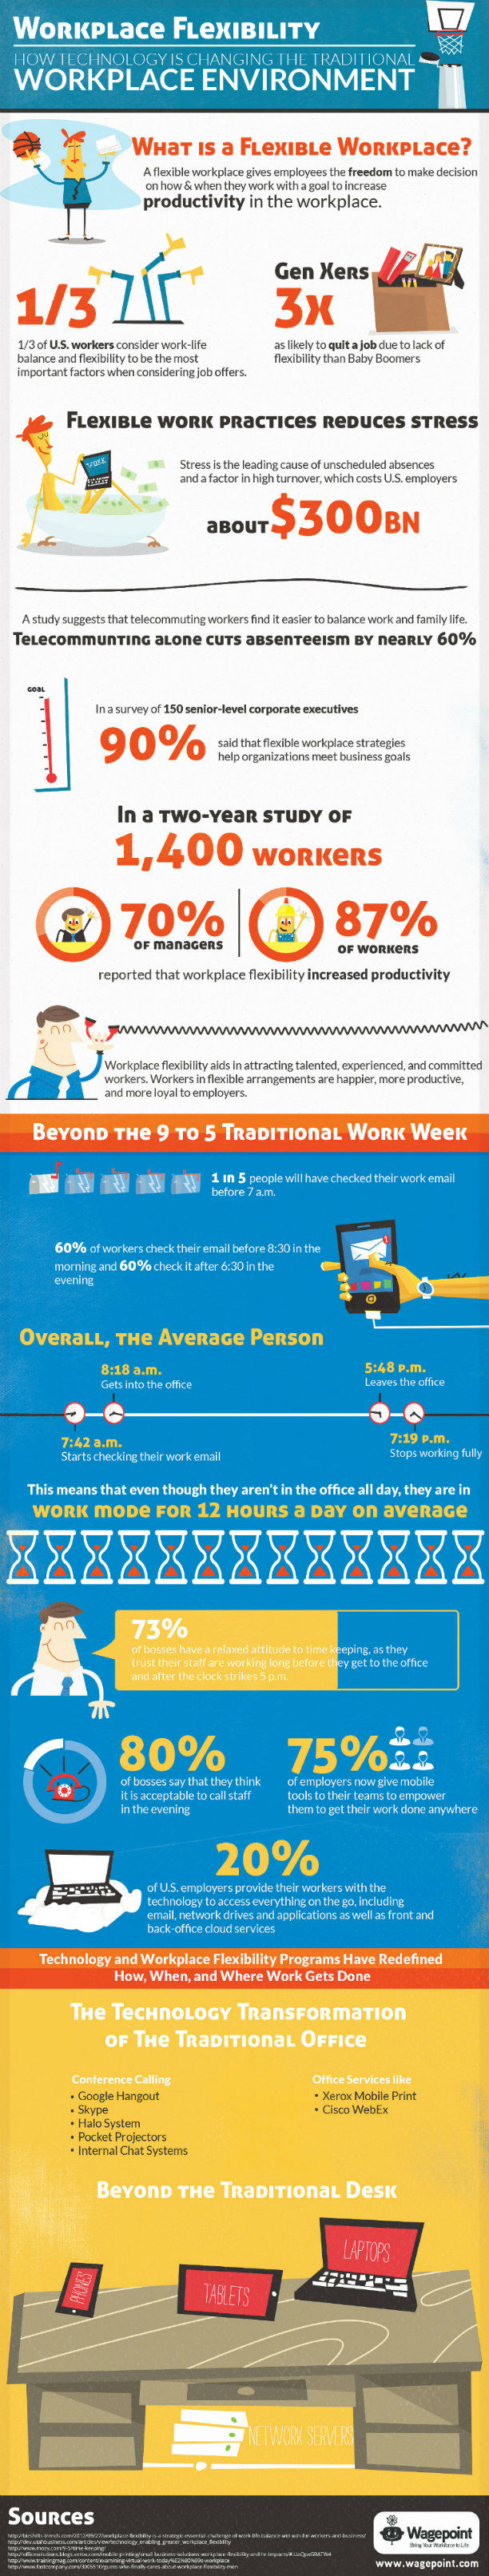 How Technology is Changing the Traditional Workplace Environment [Infographic]